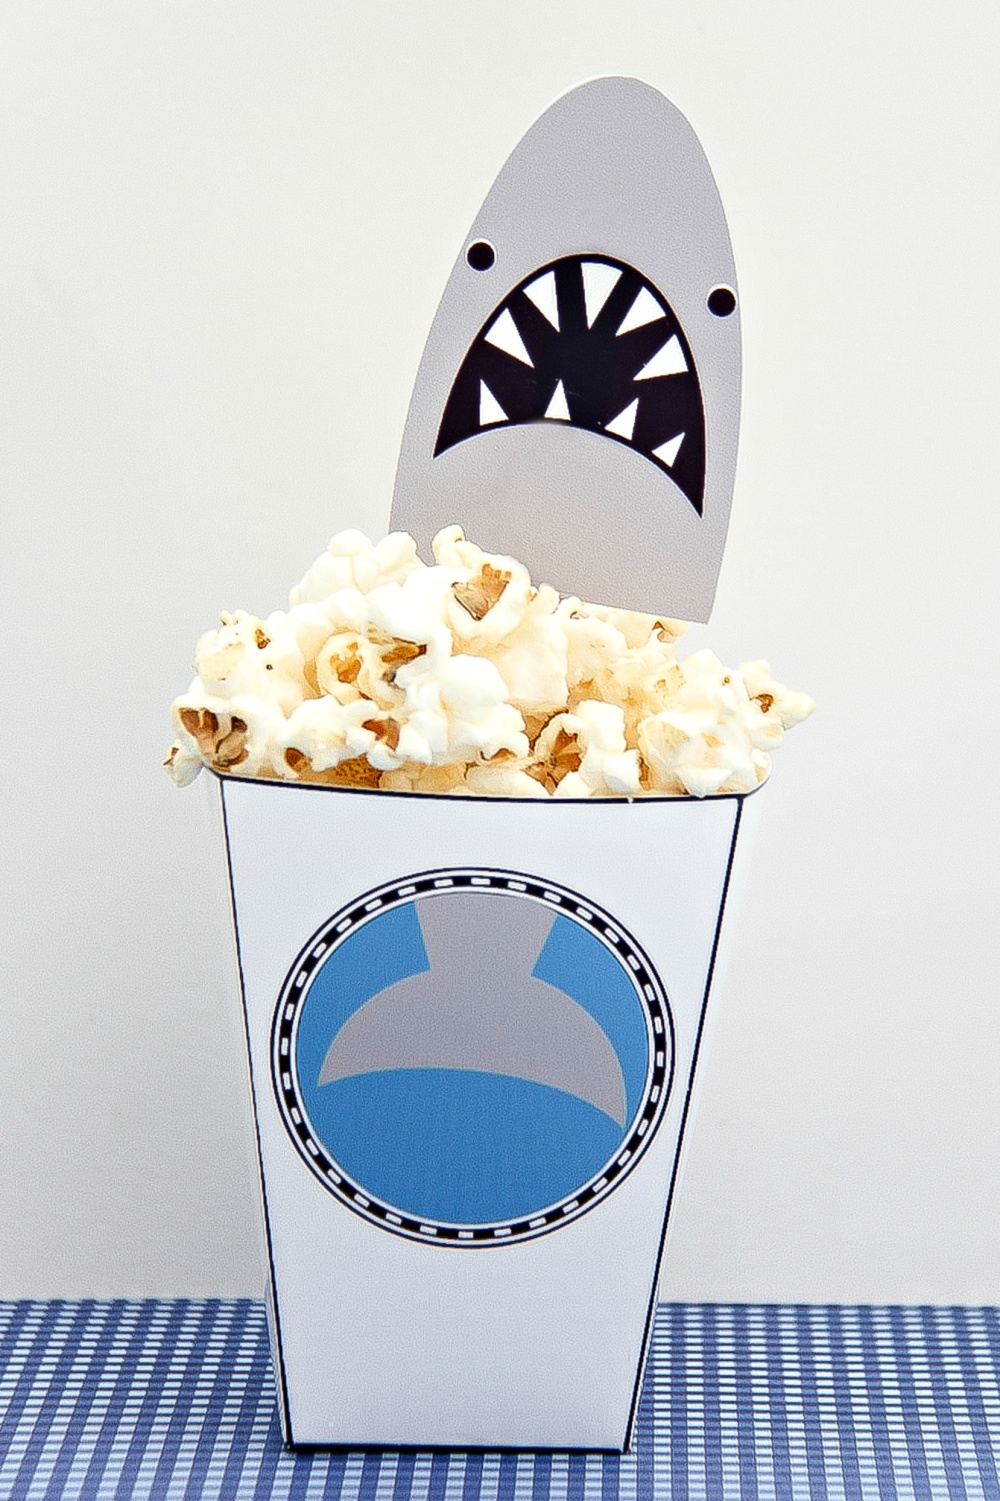 mini popcorn tubs with a shark head sticking out of the top